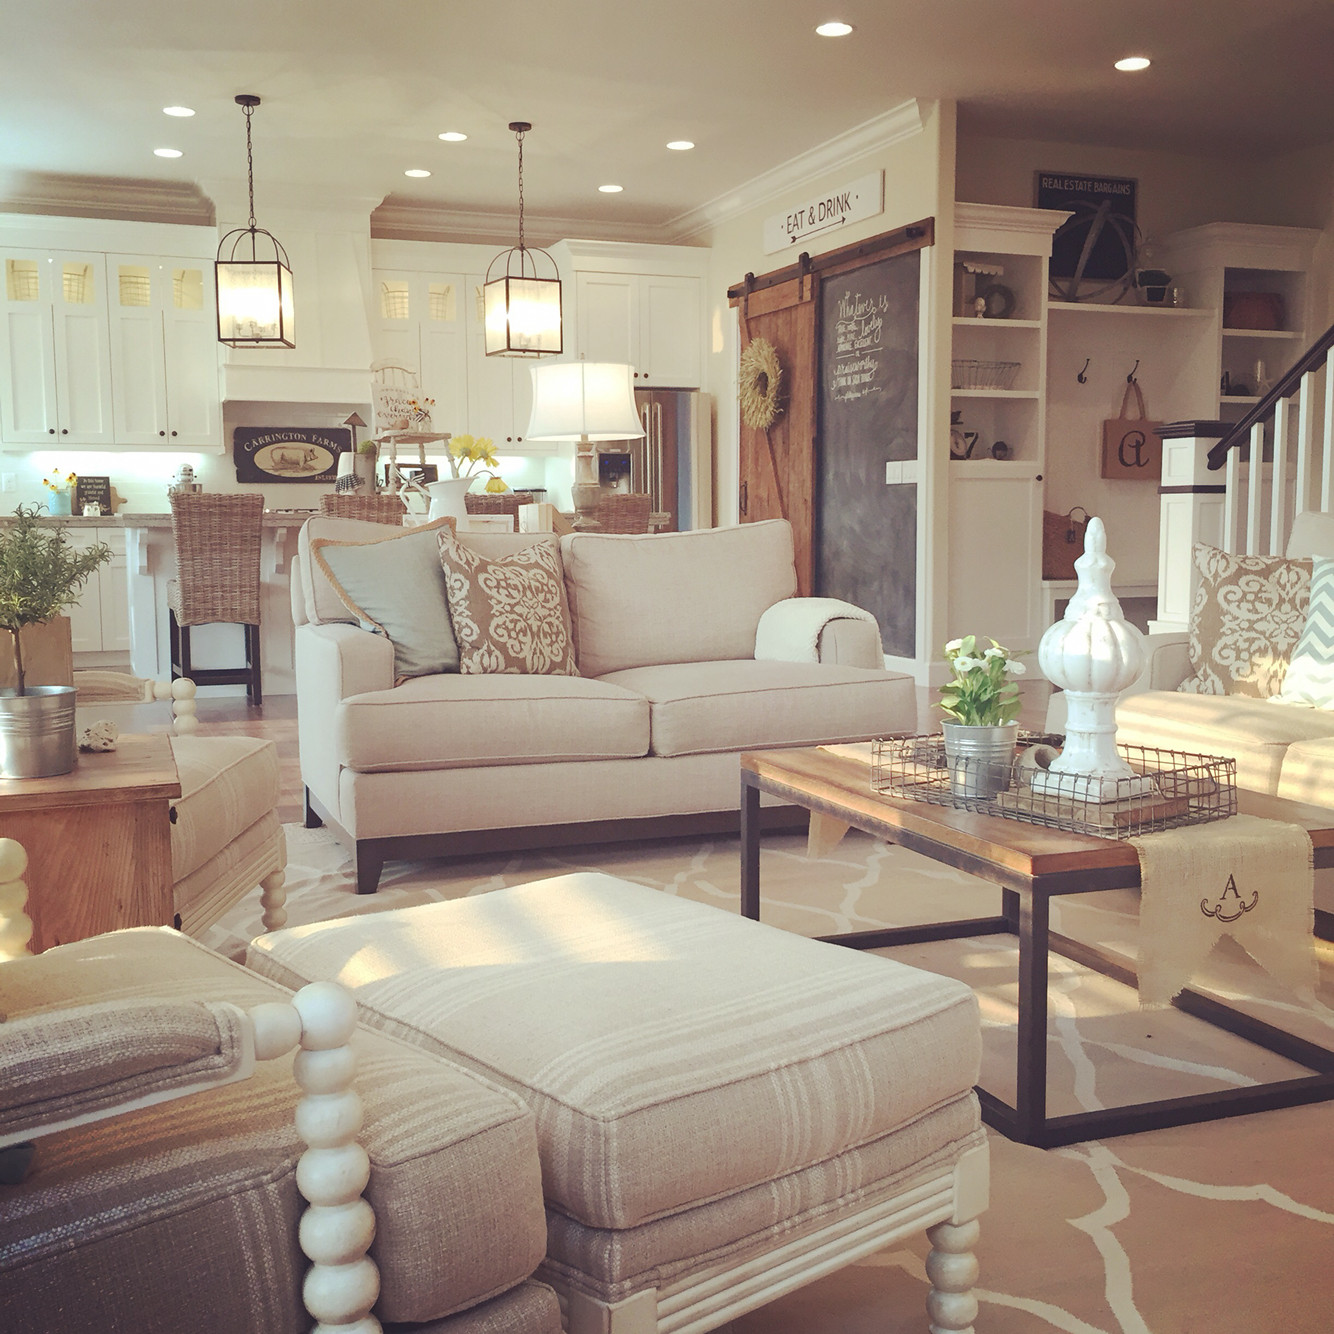 Best ideas about Farmhouse Style Living Room Furniture . Save or Pin Very Characteristic Farmhouse Living Room Furniture Now.